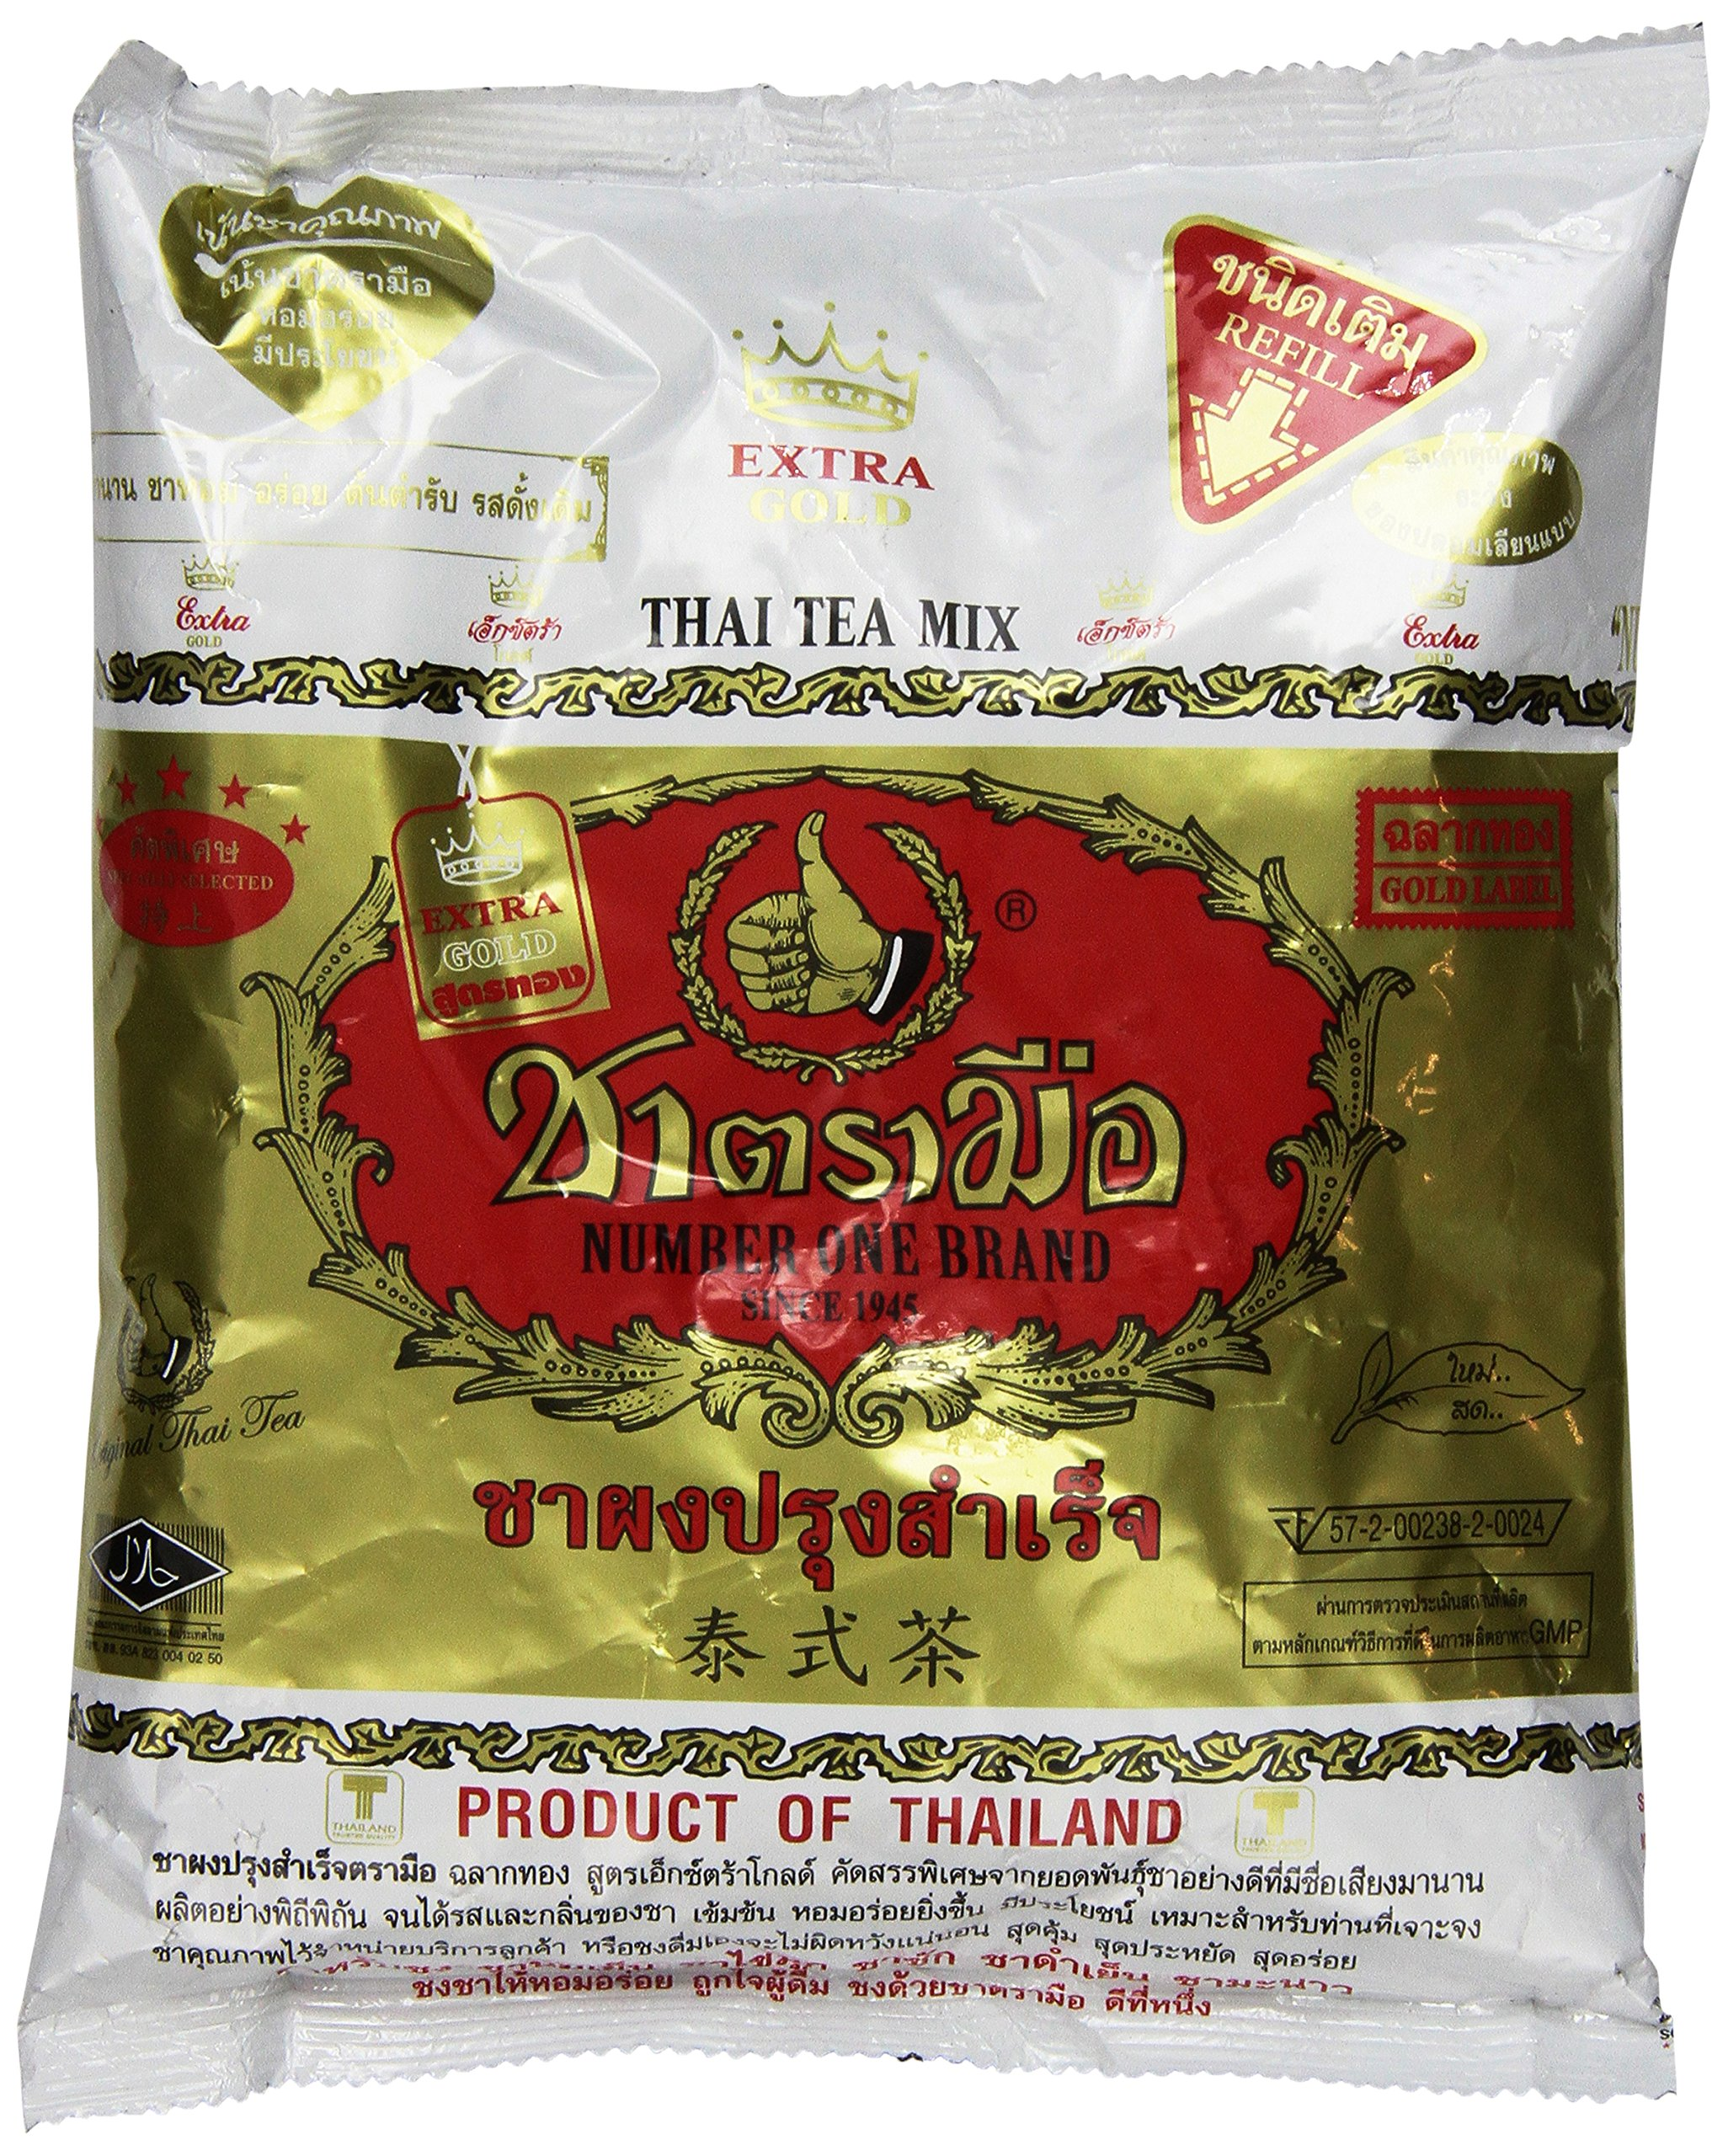 Gold Label the Original Thai Iced Tea Mix ~ Number One Brand Imported From Thailand! 400g Bag Great for Restaurants That Want to Serve Authentic and High Quality Thai Iced Teas